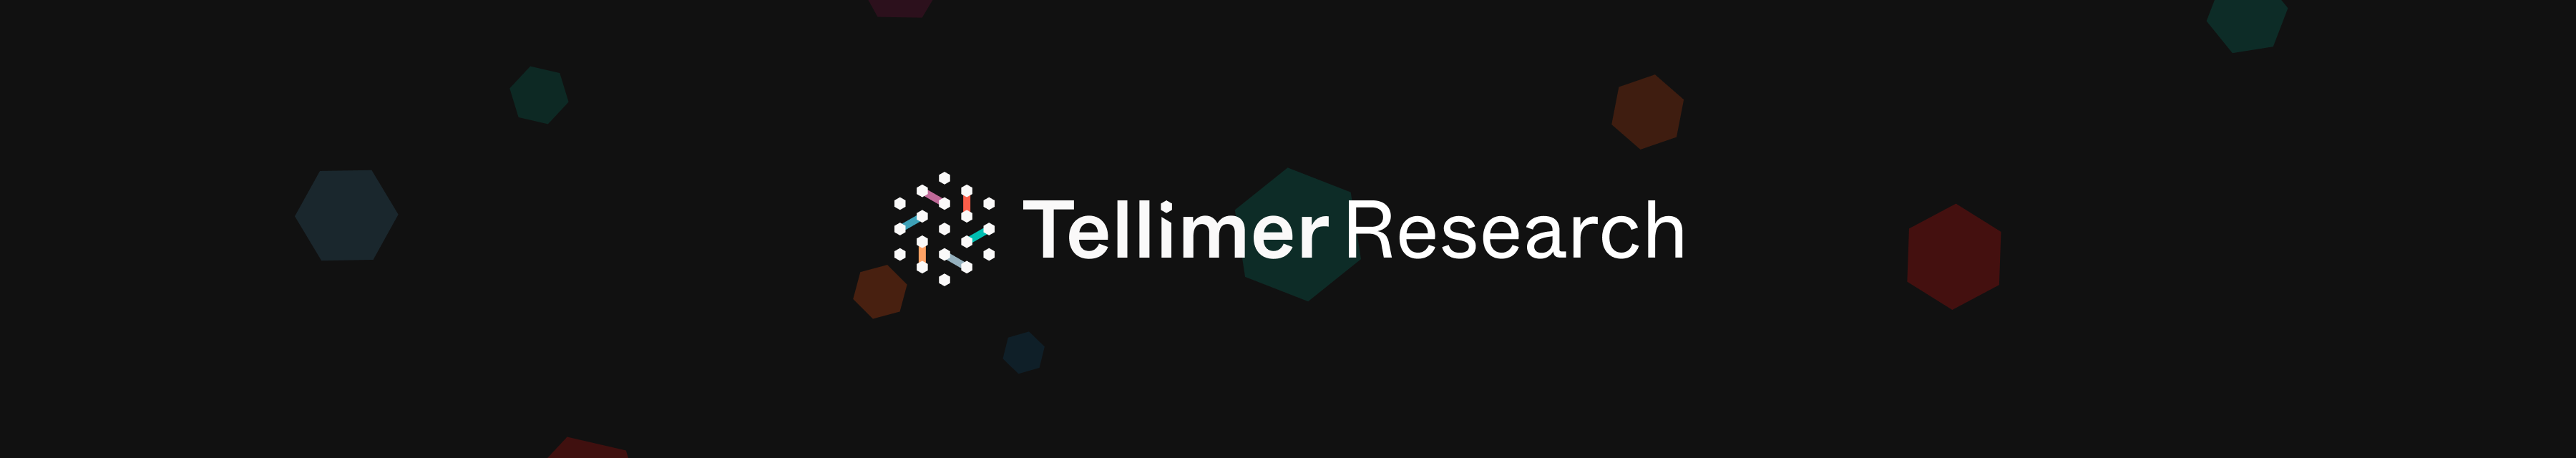 Tellimer Research